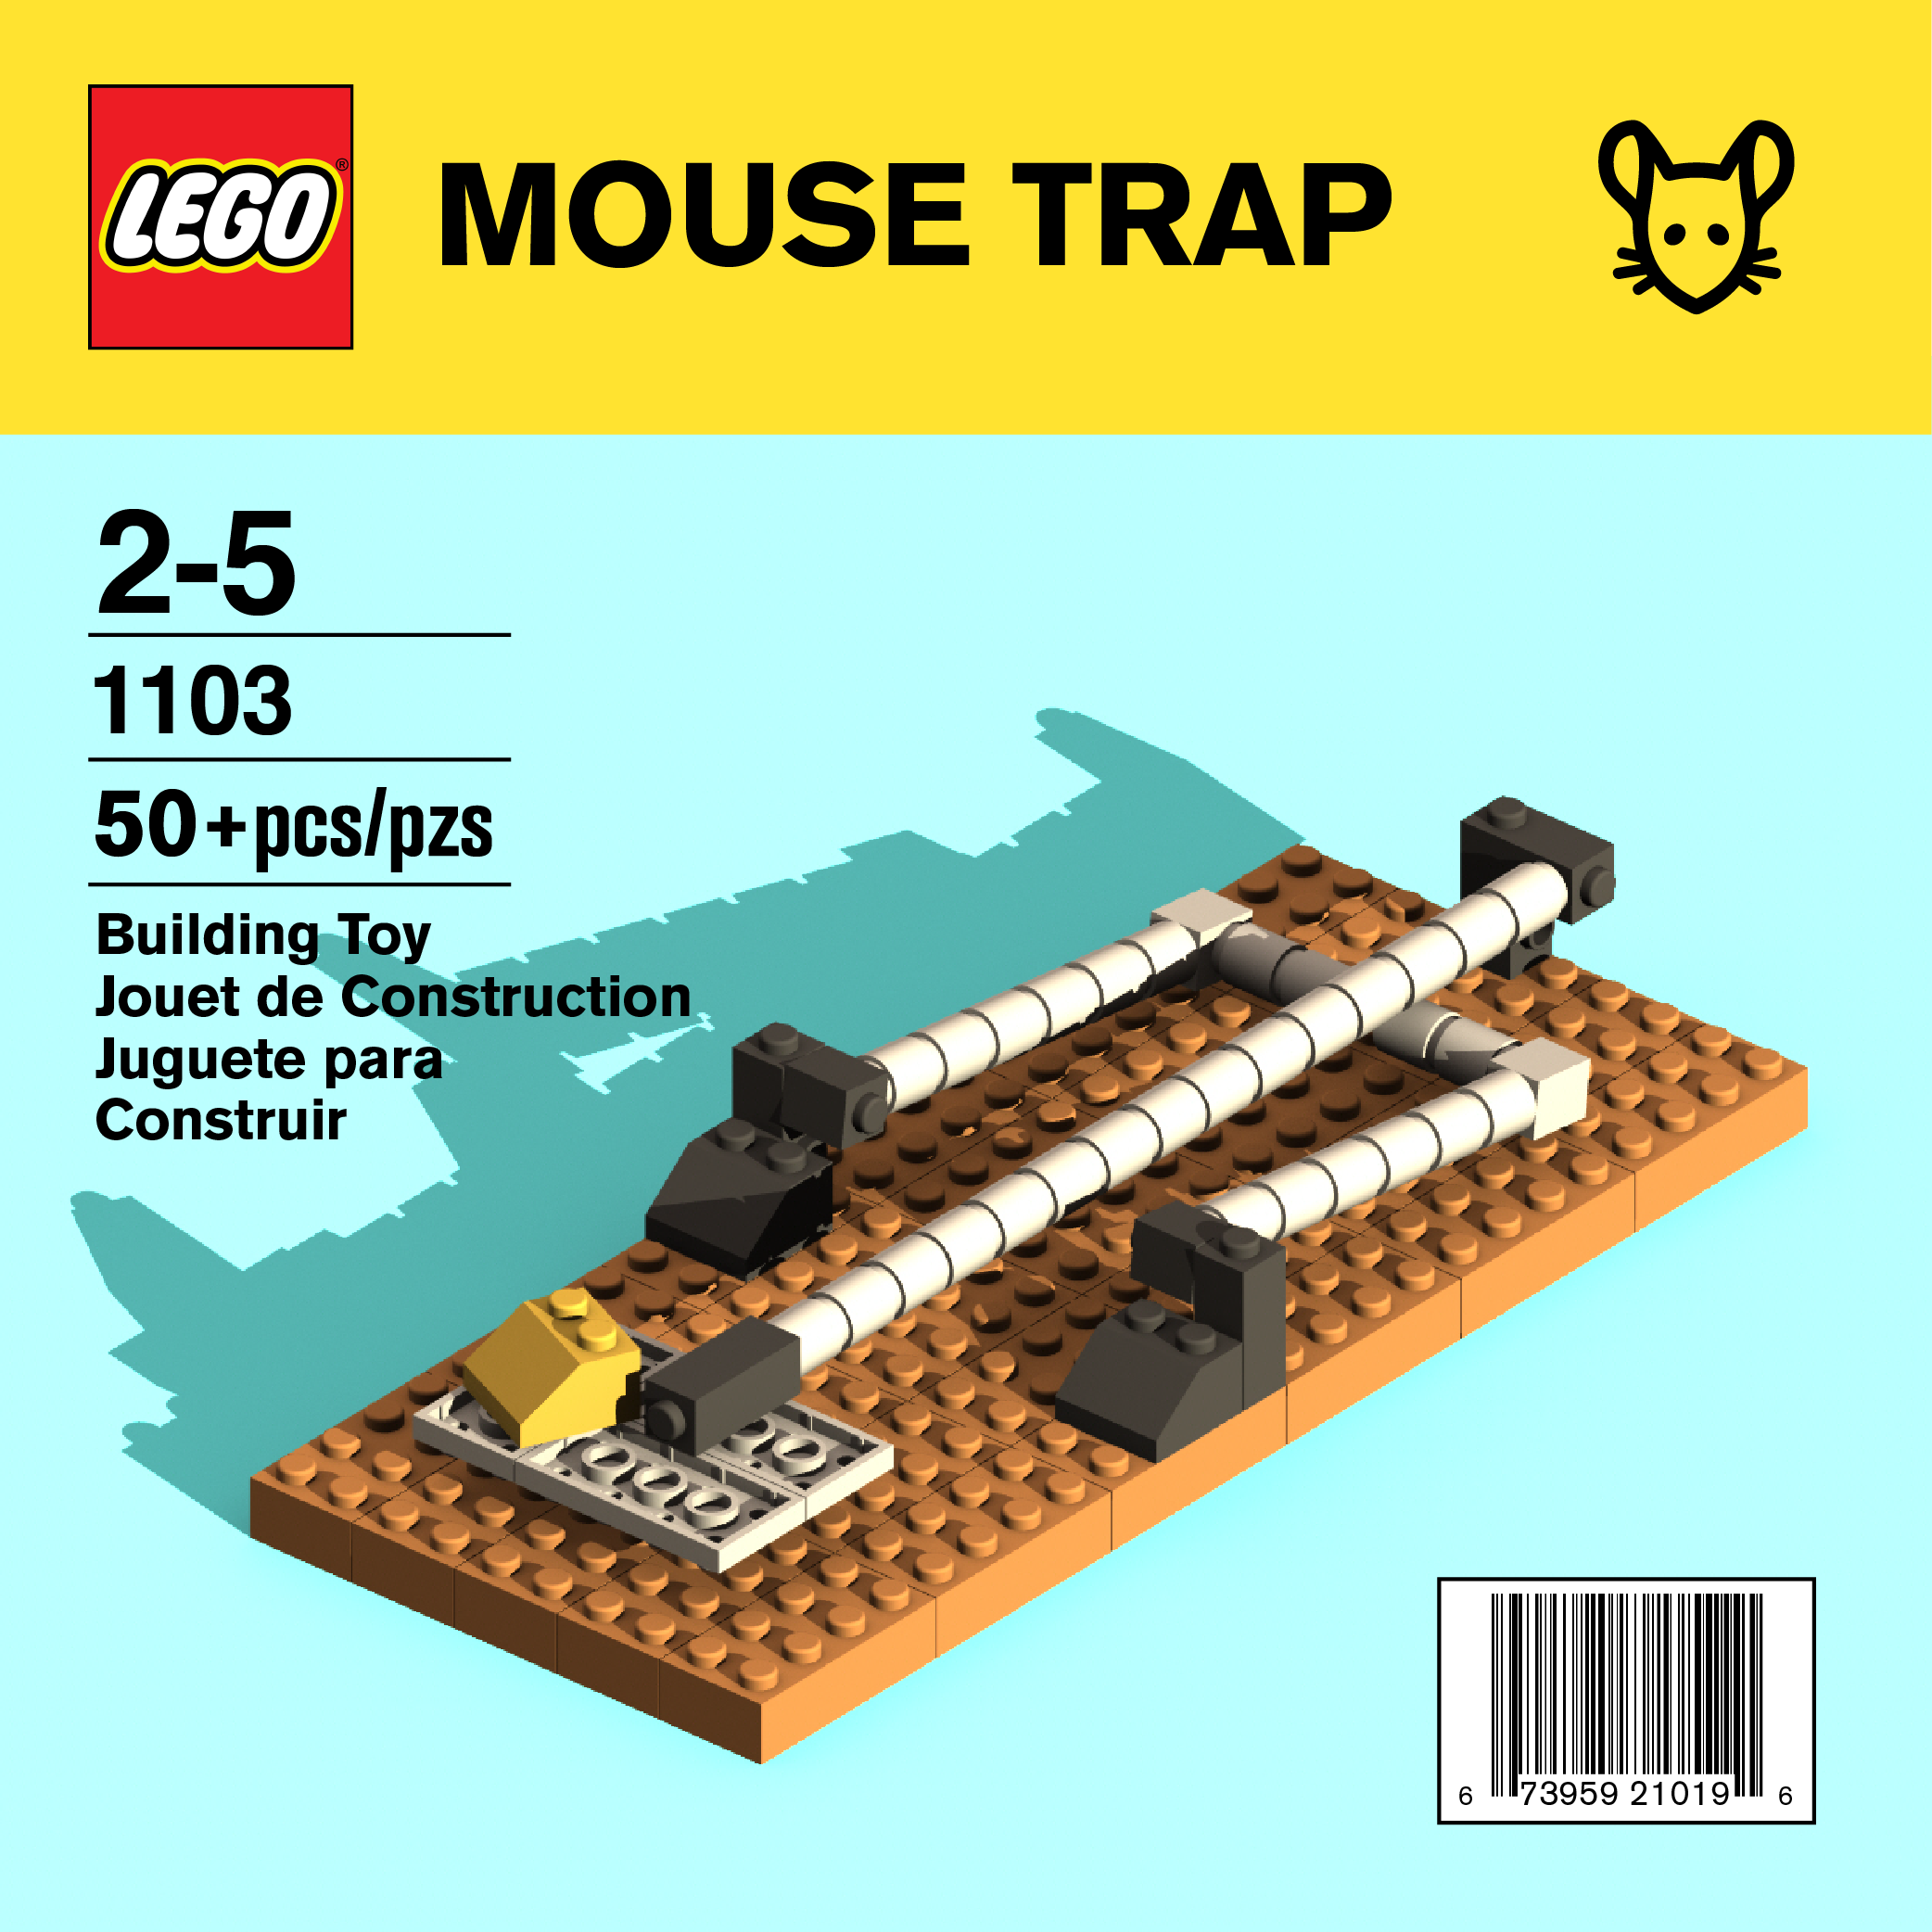 Dangerous Lego Kit - Mouse Trap